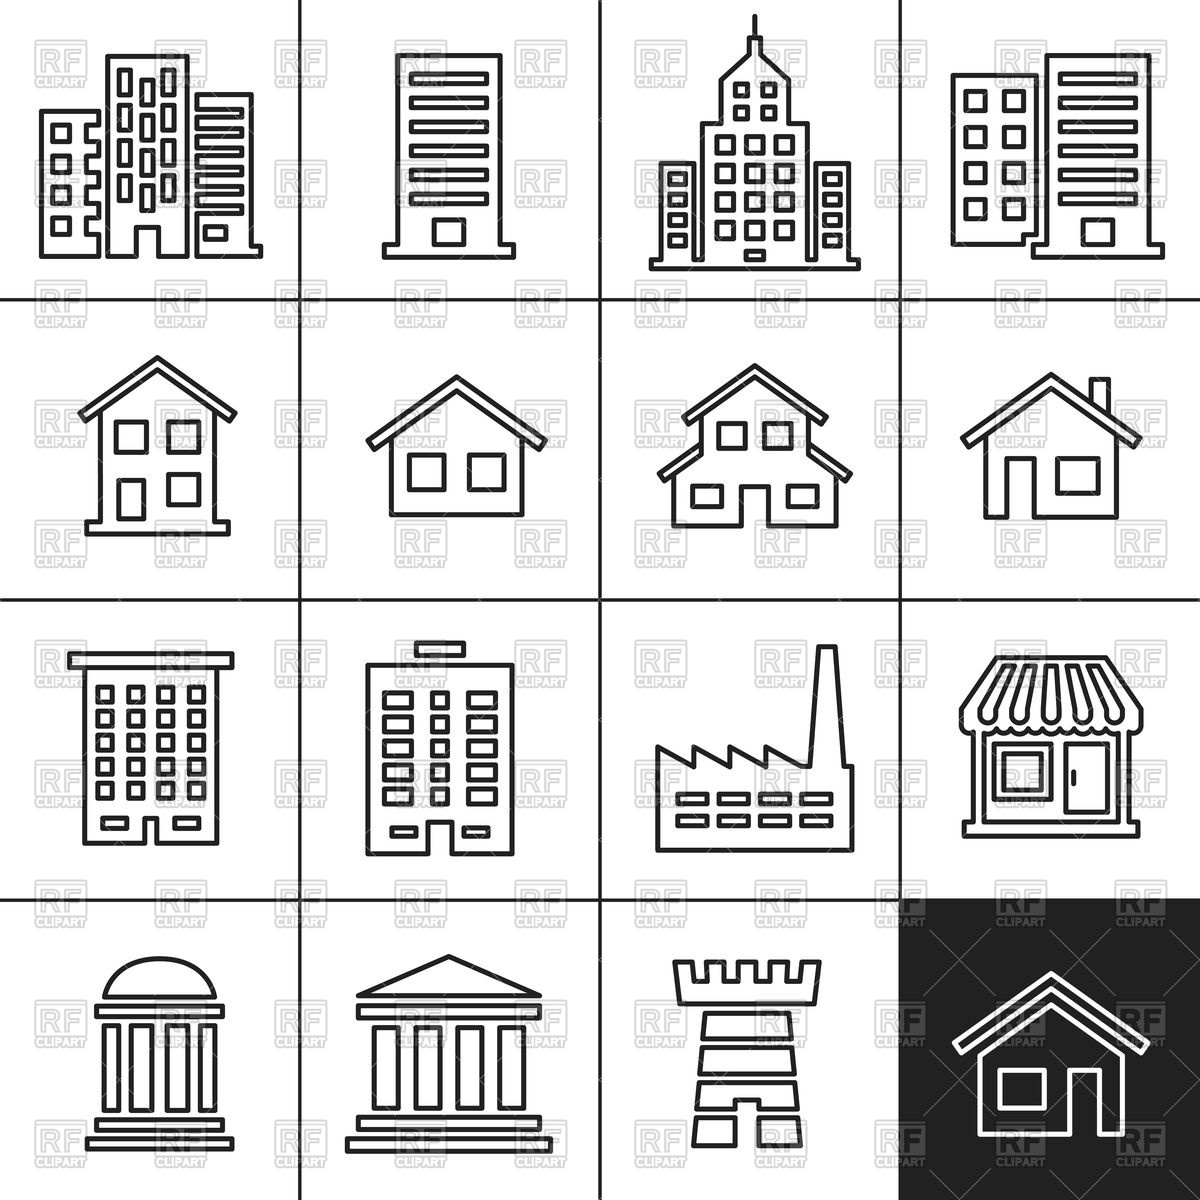 Icons of buildings of different architecture types Vector Image.